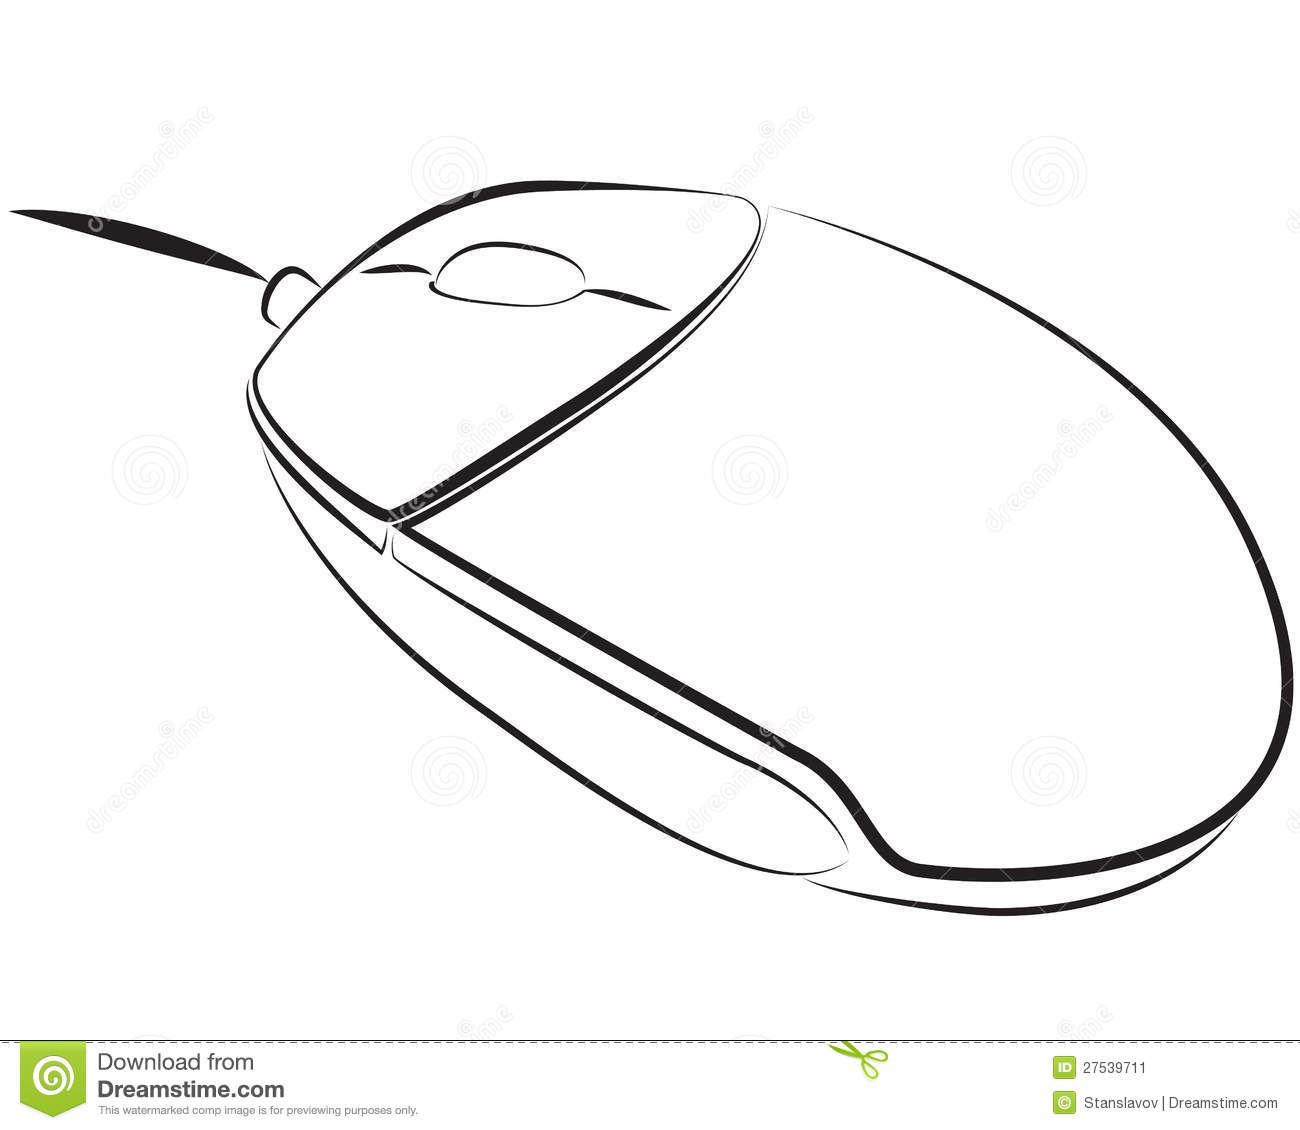 Pc Mouse Stock Image - Image: 27539711